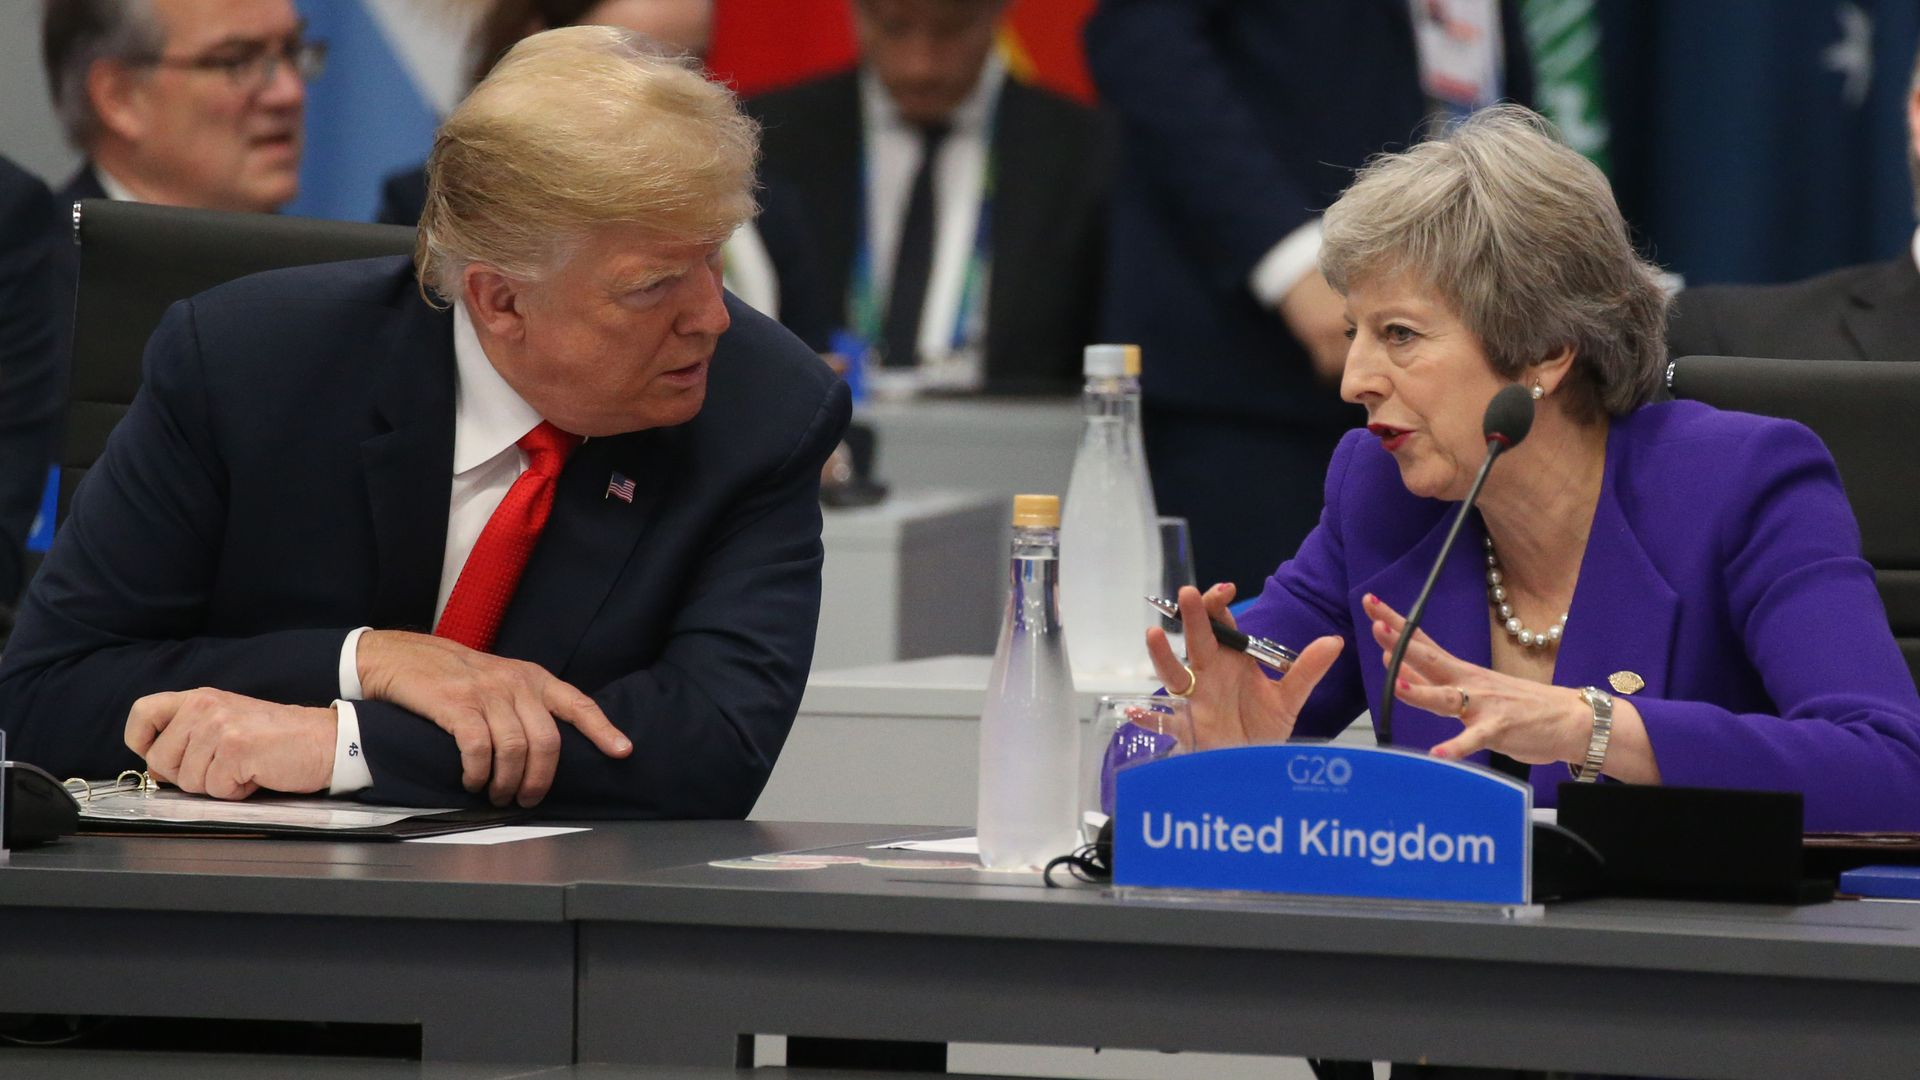 Donald Trump and Theresa May seated next to each other at a conference table